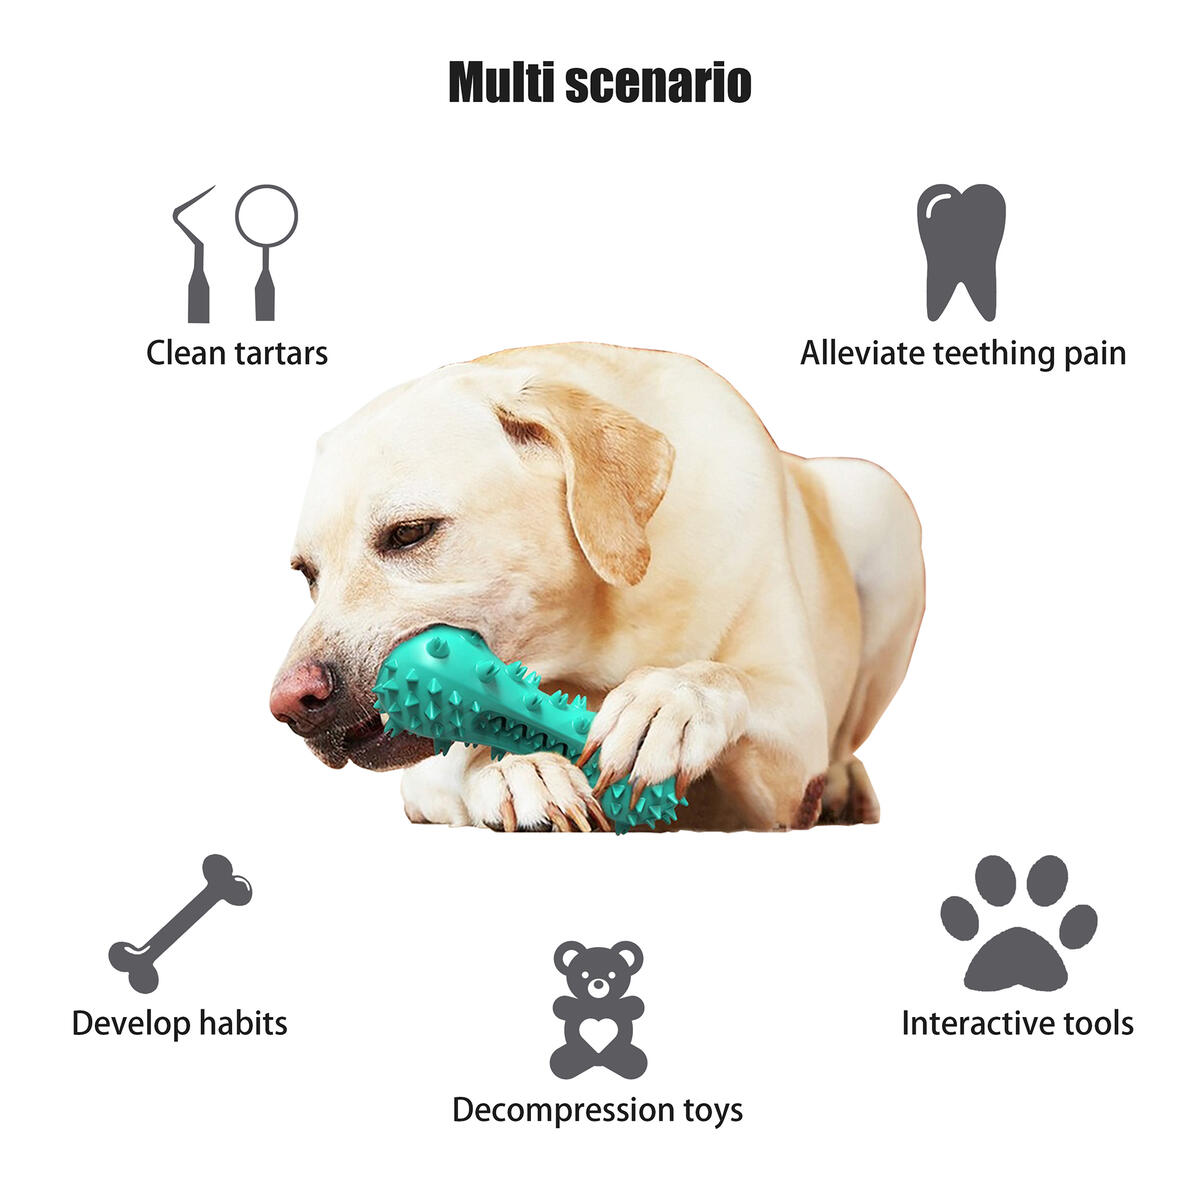 Dog Squeaky Chew Toys,Interactive Puppy Sounding Dental Toothbrush,Tooth Cleaning/Brushing/Care Chewers,Rubber Whistle Molar Stick,Simulation Training Gnawing Bone,for Small Medium Large Dogs (Blue)